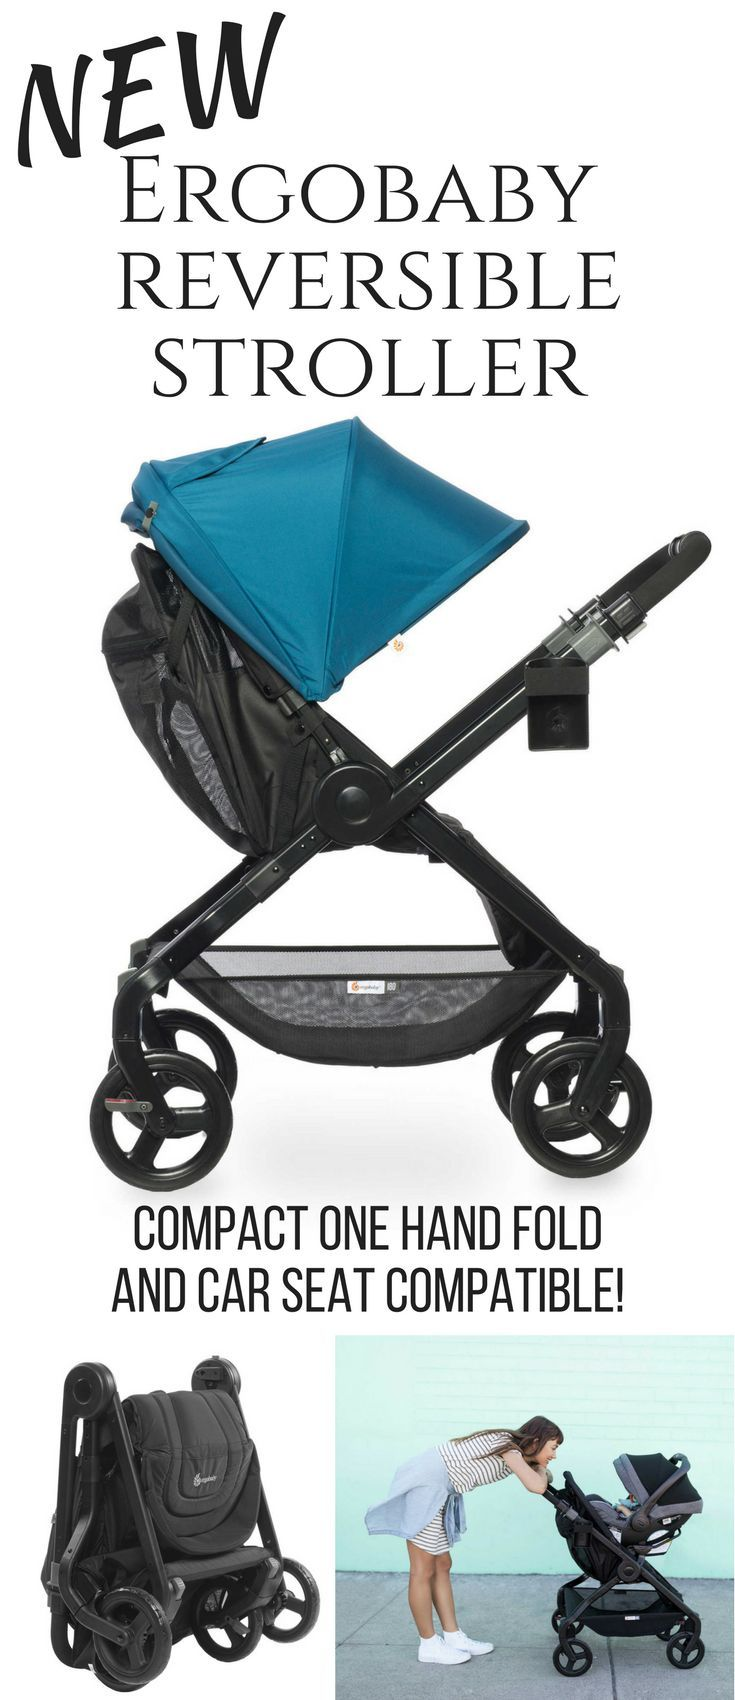 All you could want in a stroller! Lightweight, one hand